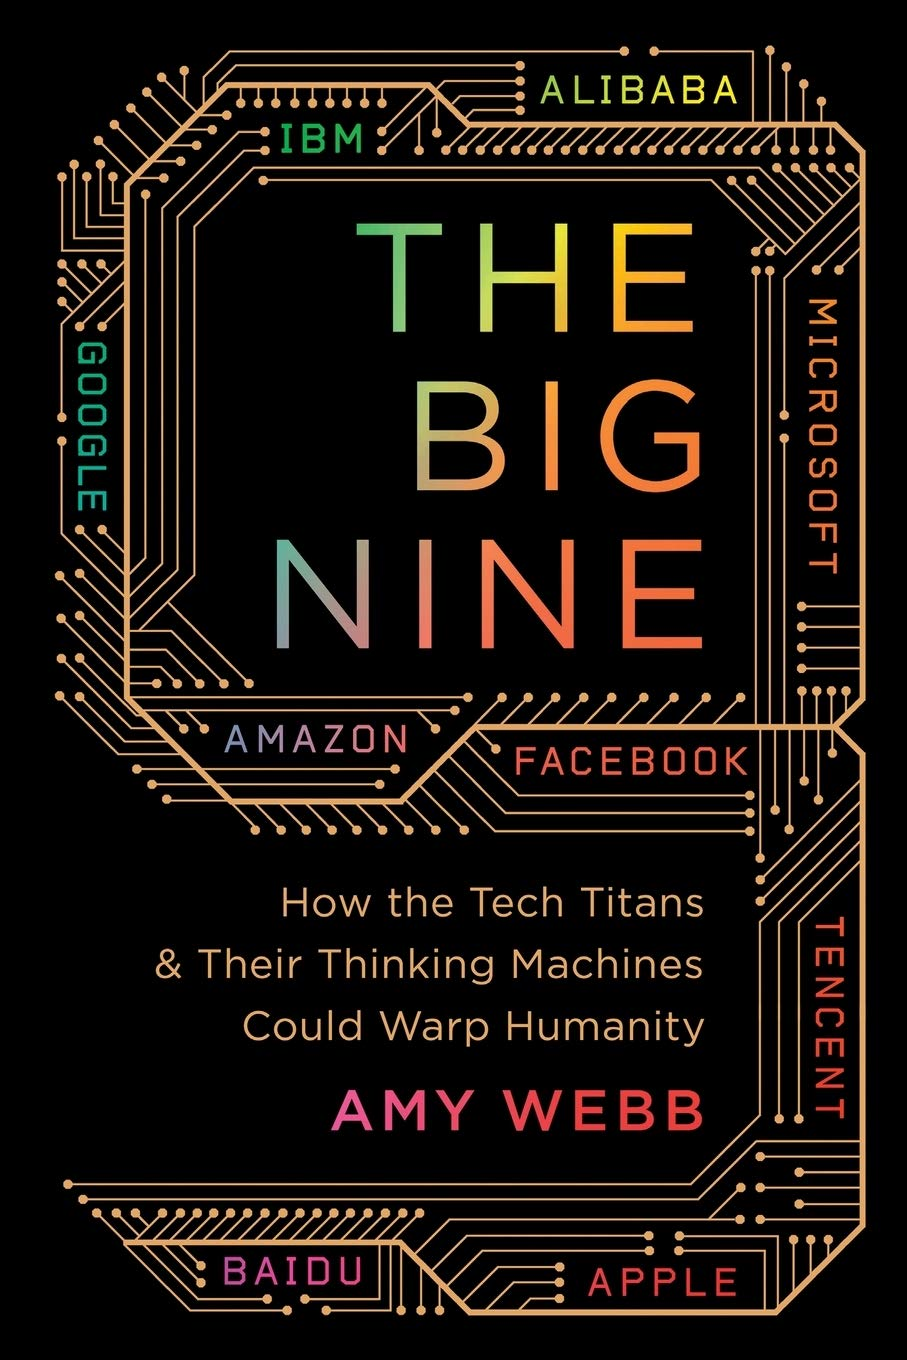 The Big Nine: How the Tech Titans and Their Thinking Machines Could Warp Humanity.